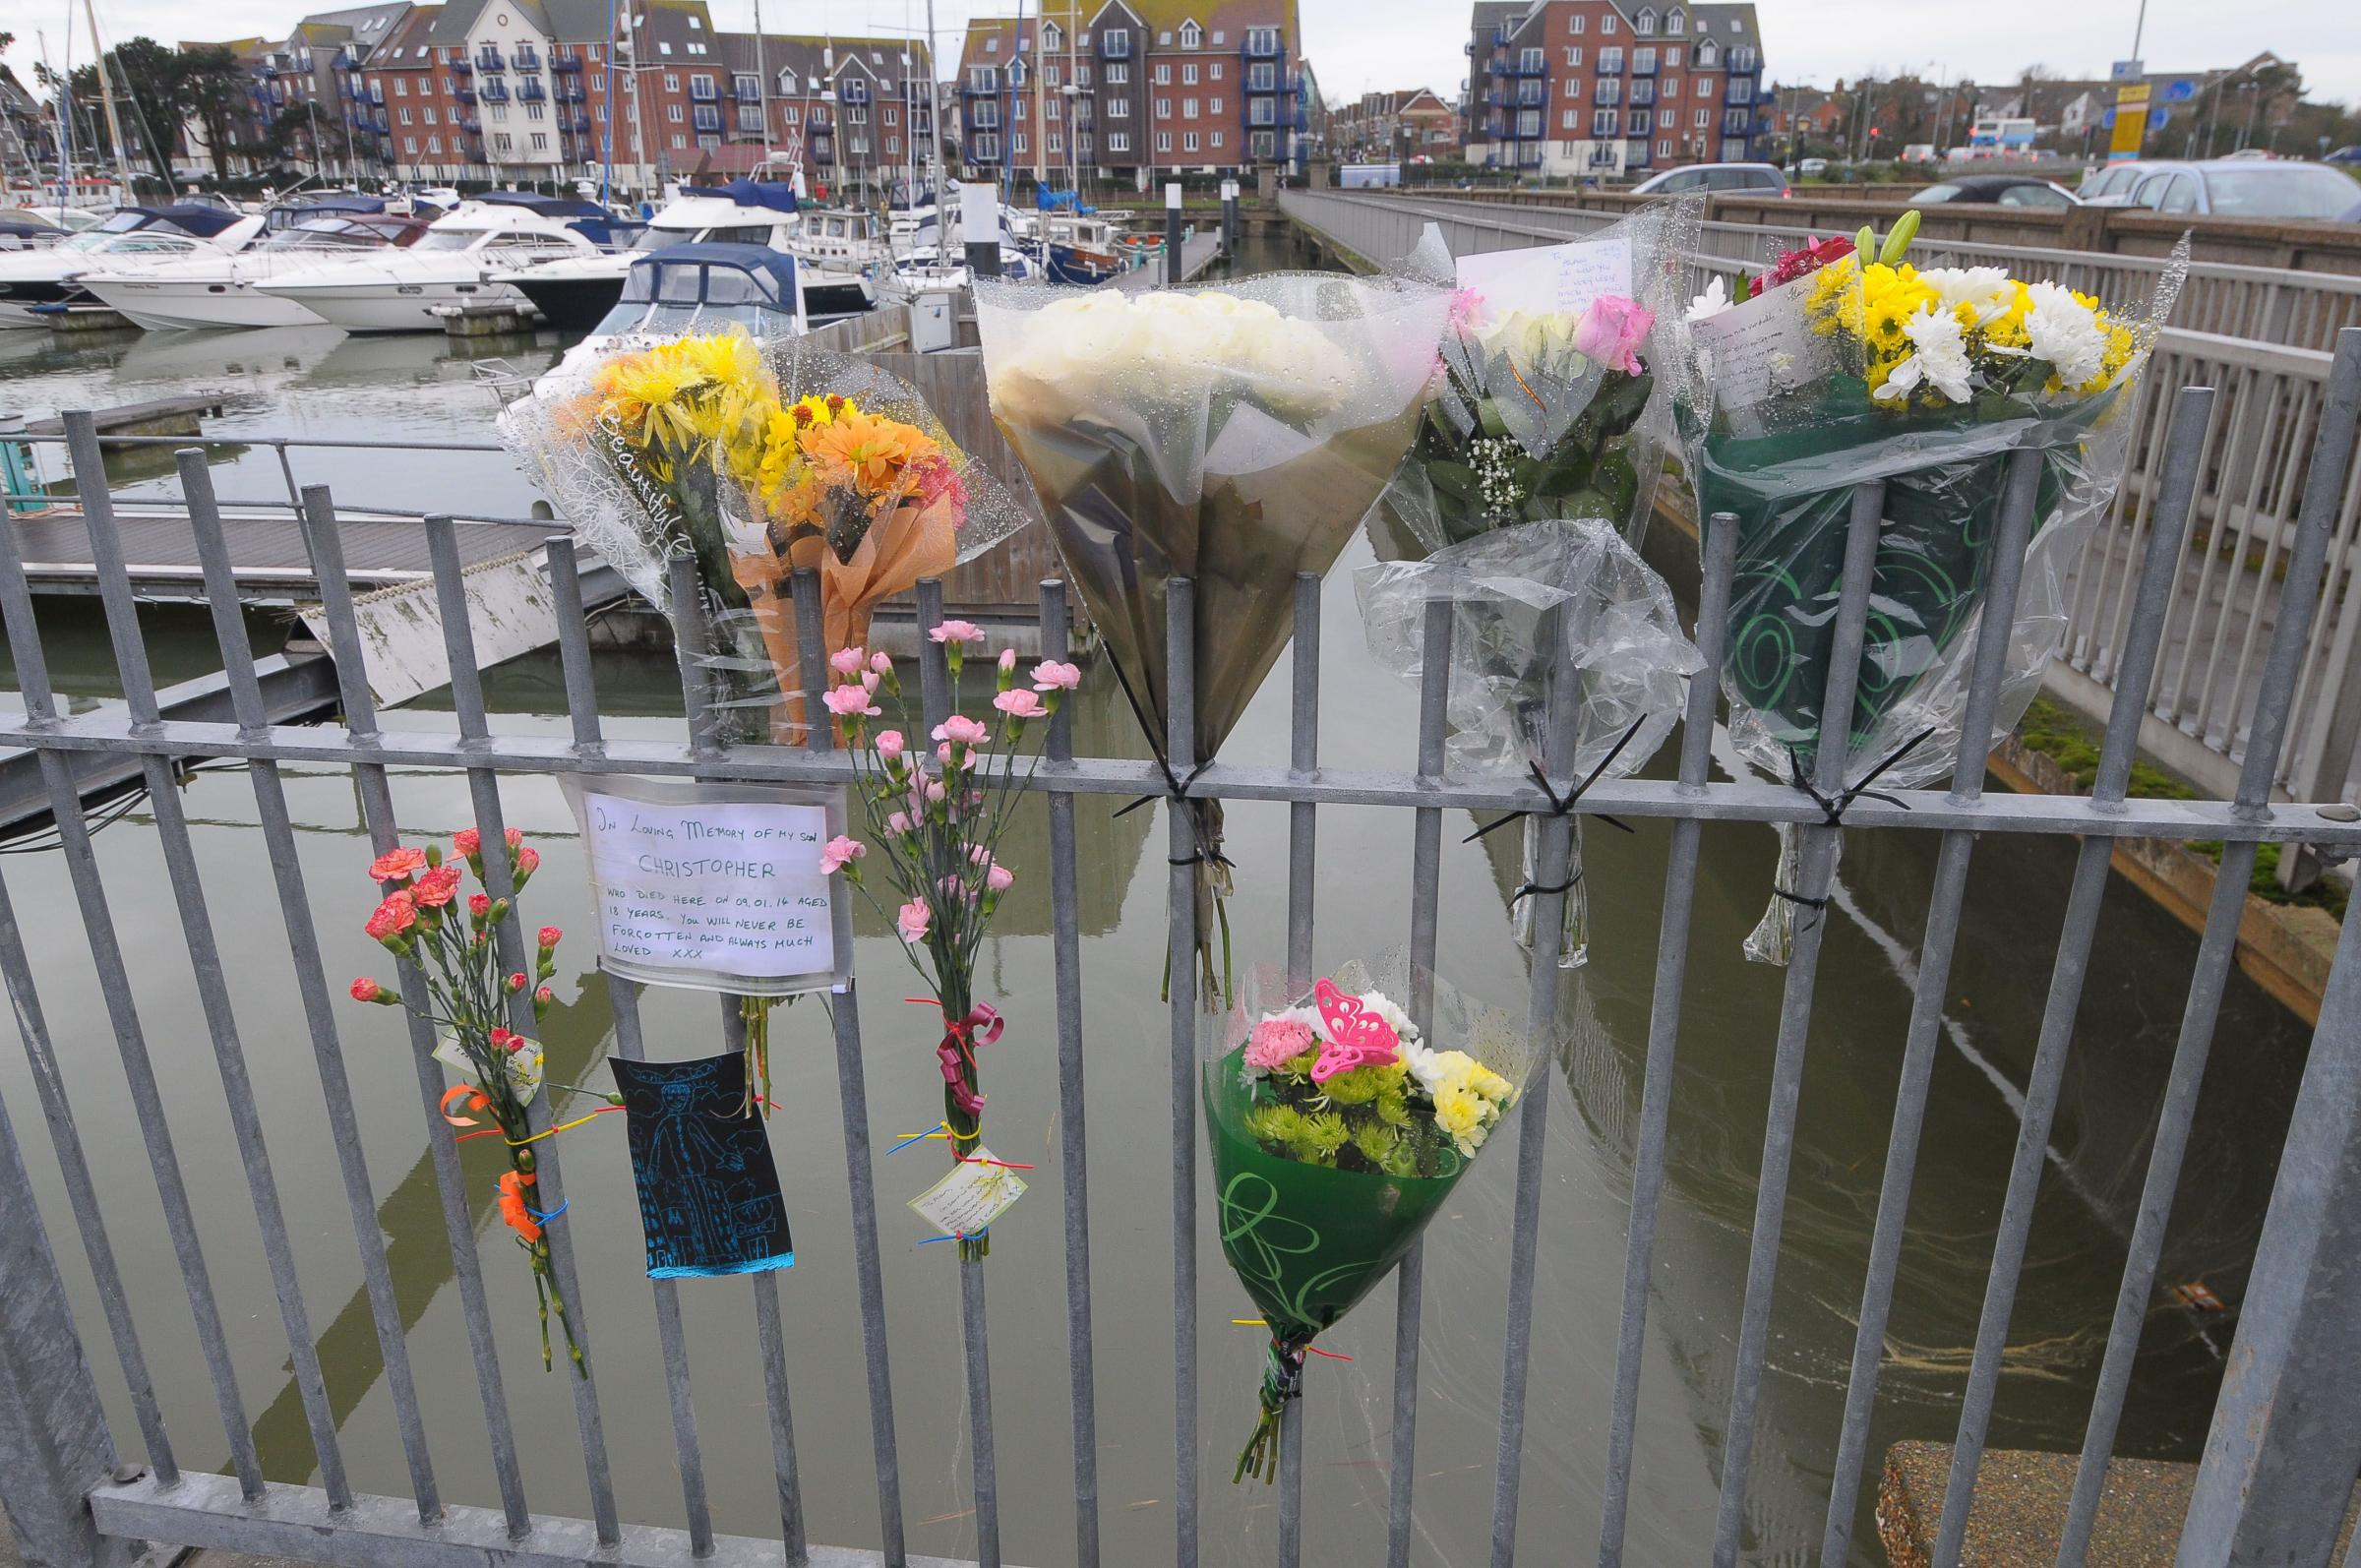 Tributes: People have left flowers and notes for Christopher Vaughan.